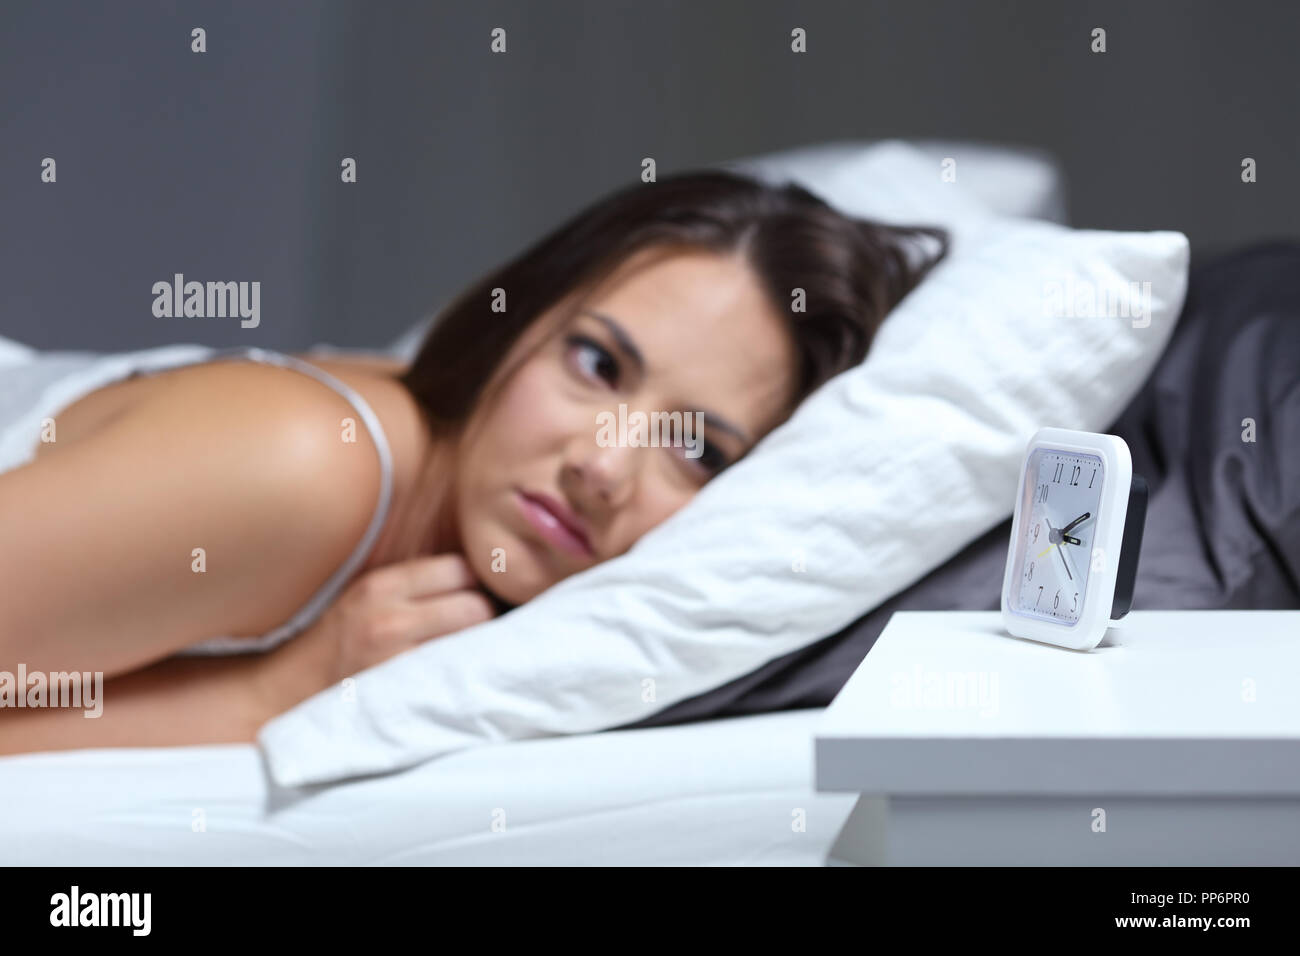 Insomniac woman bored looking at alarm clock in the bed in the night - Stock Image